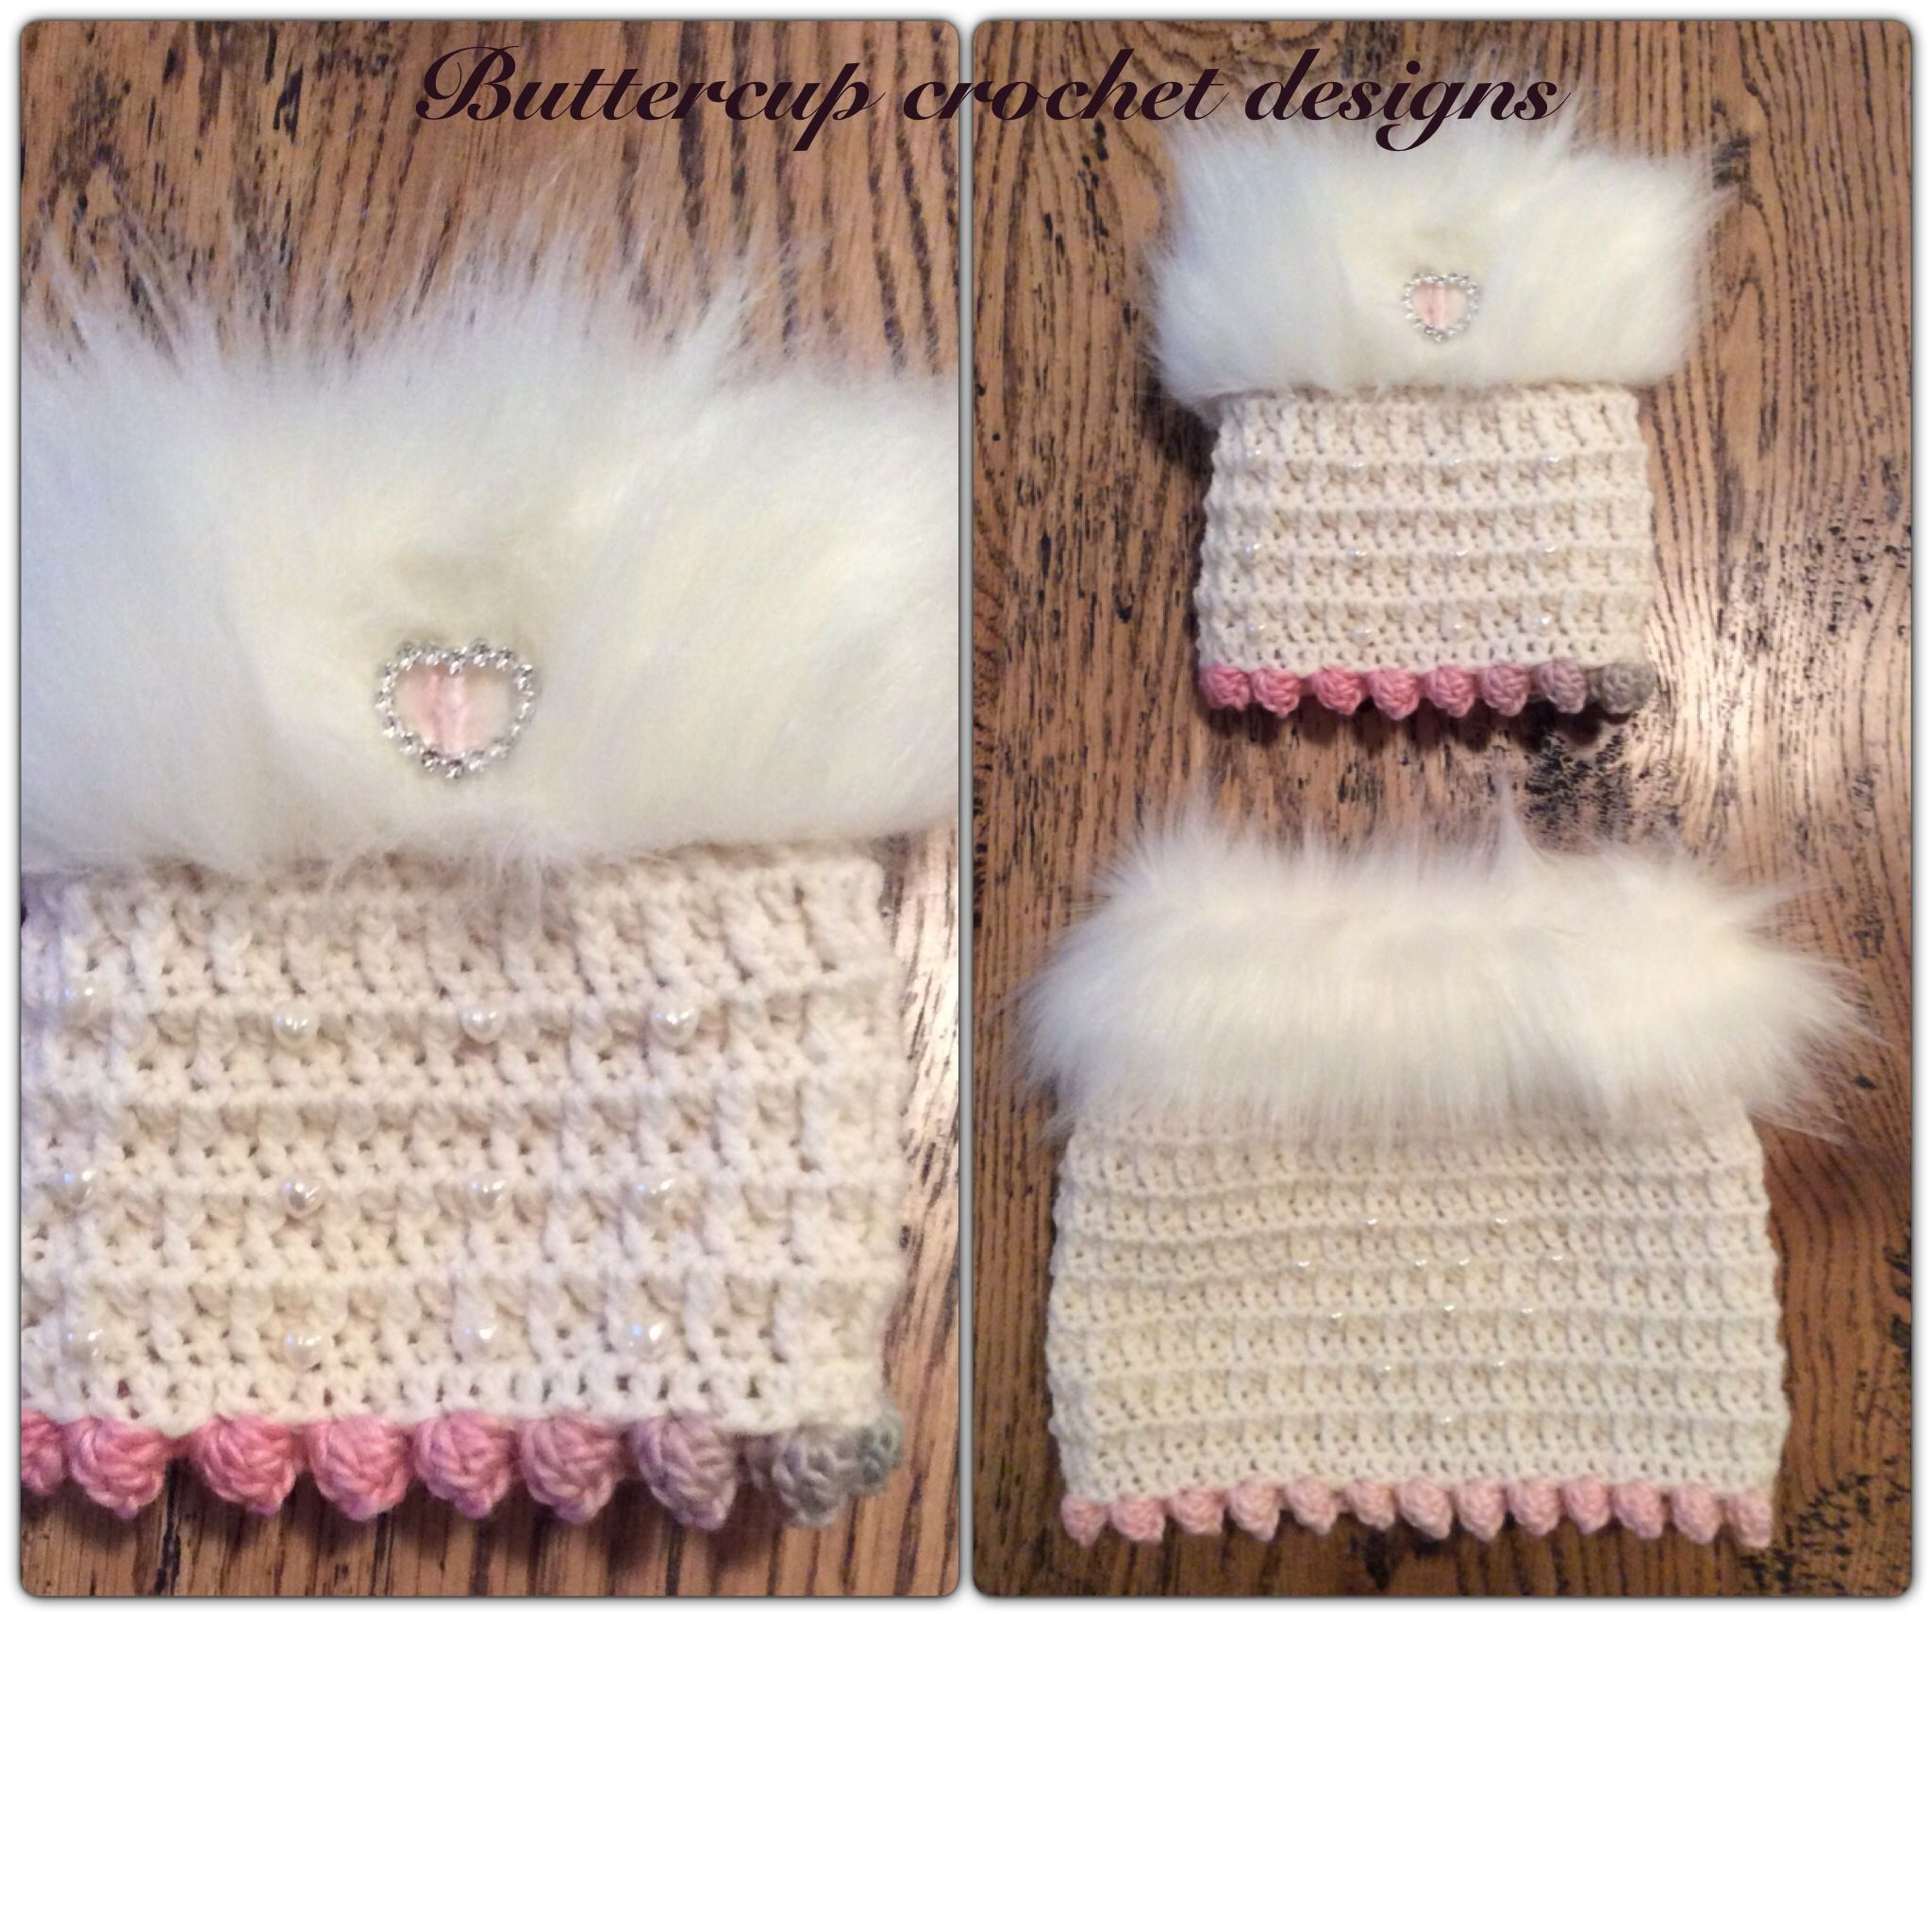 Made by Buttercup Crochet Designs Snood and skirt made for a pooch